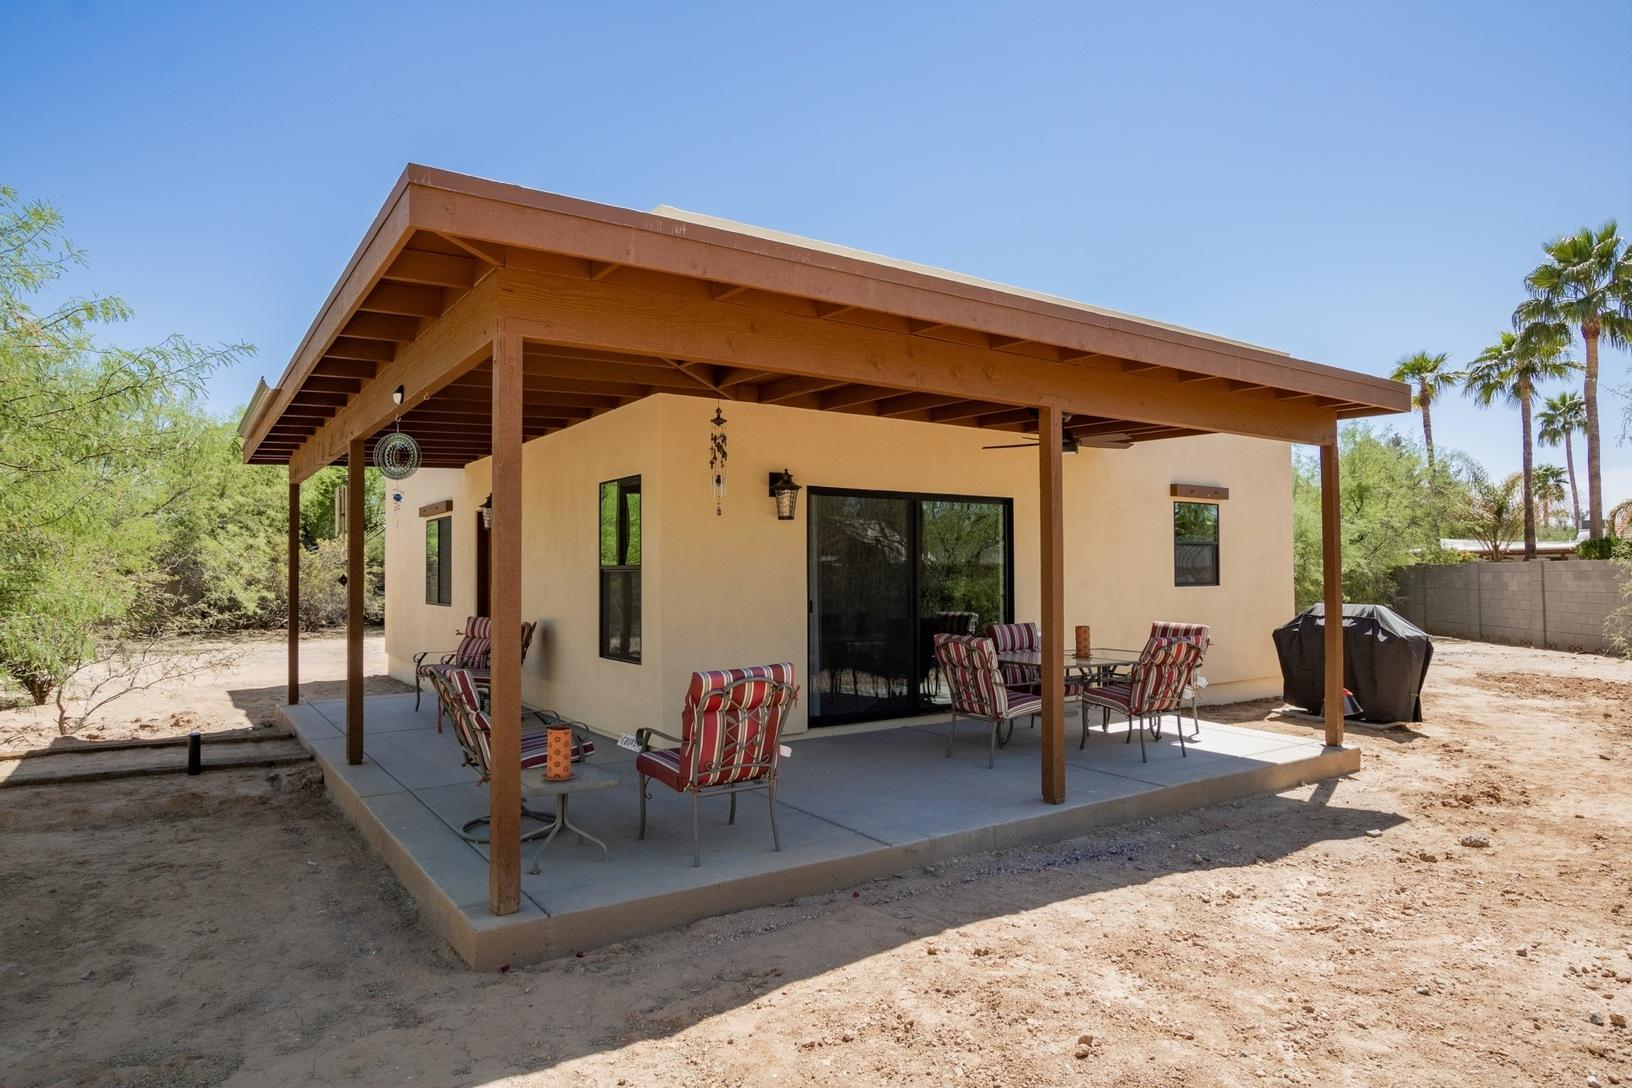 Guest House in Scottsdale